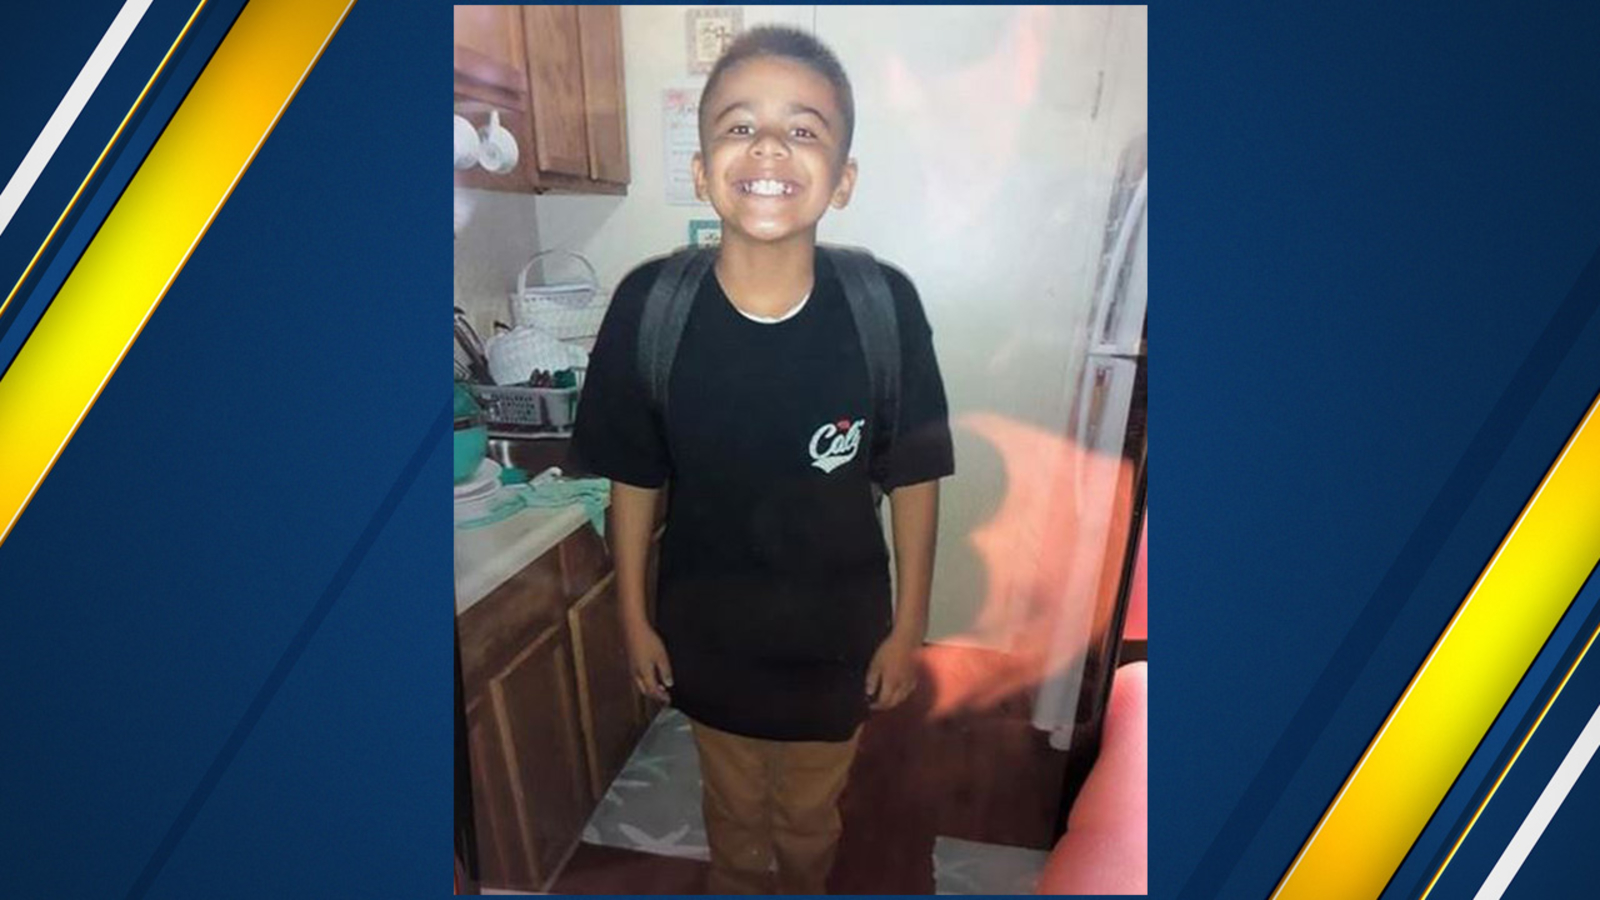 Tulare Police searching for missing 11-year-old boy